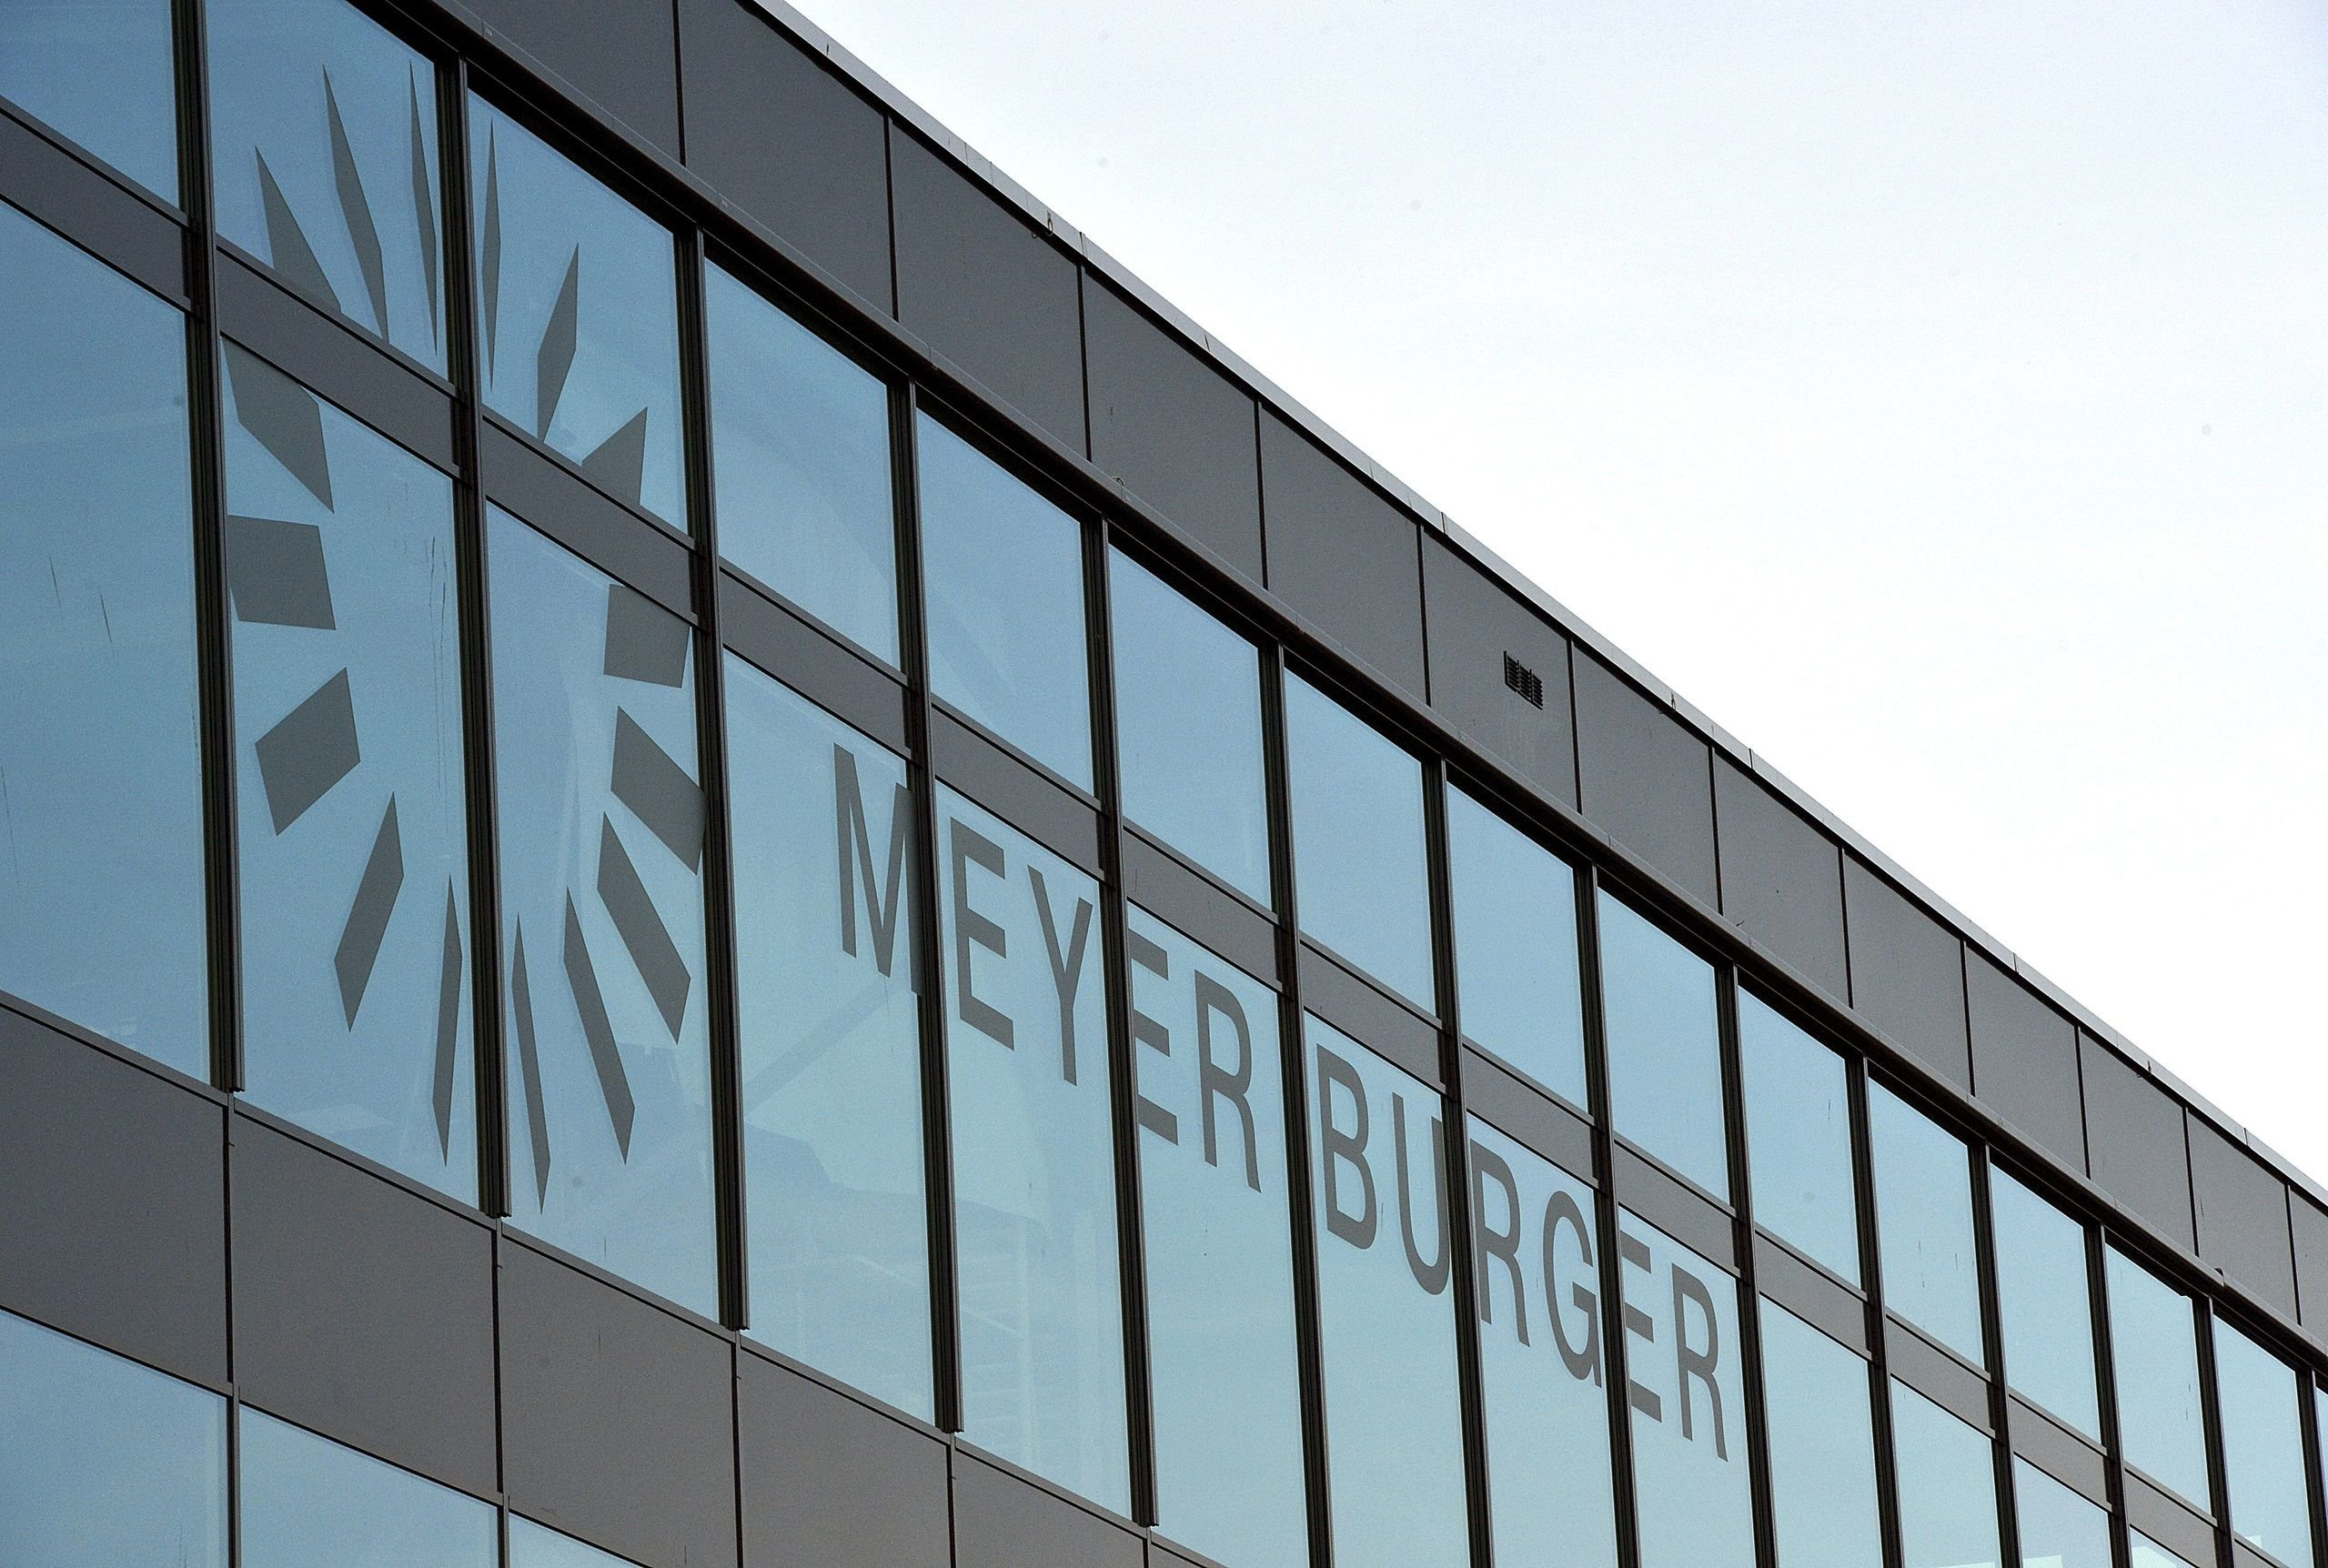 Meyer Burger plans to reopen a former module factory in Freiberg. (Credit: Meyer Burger)